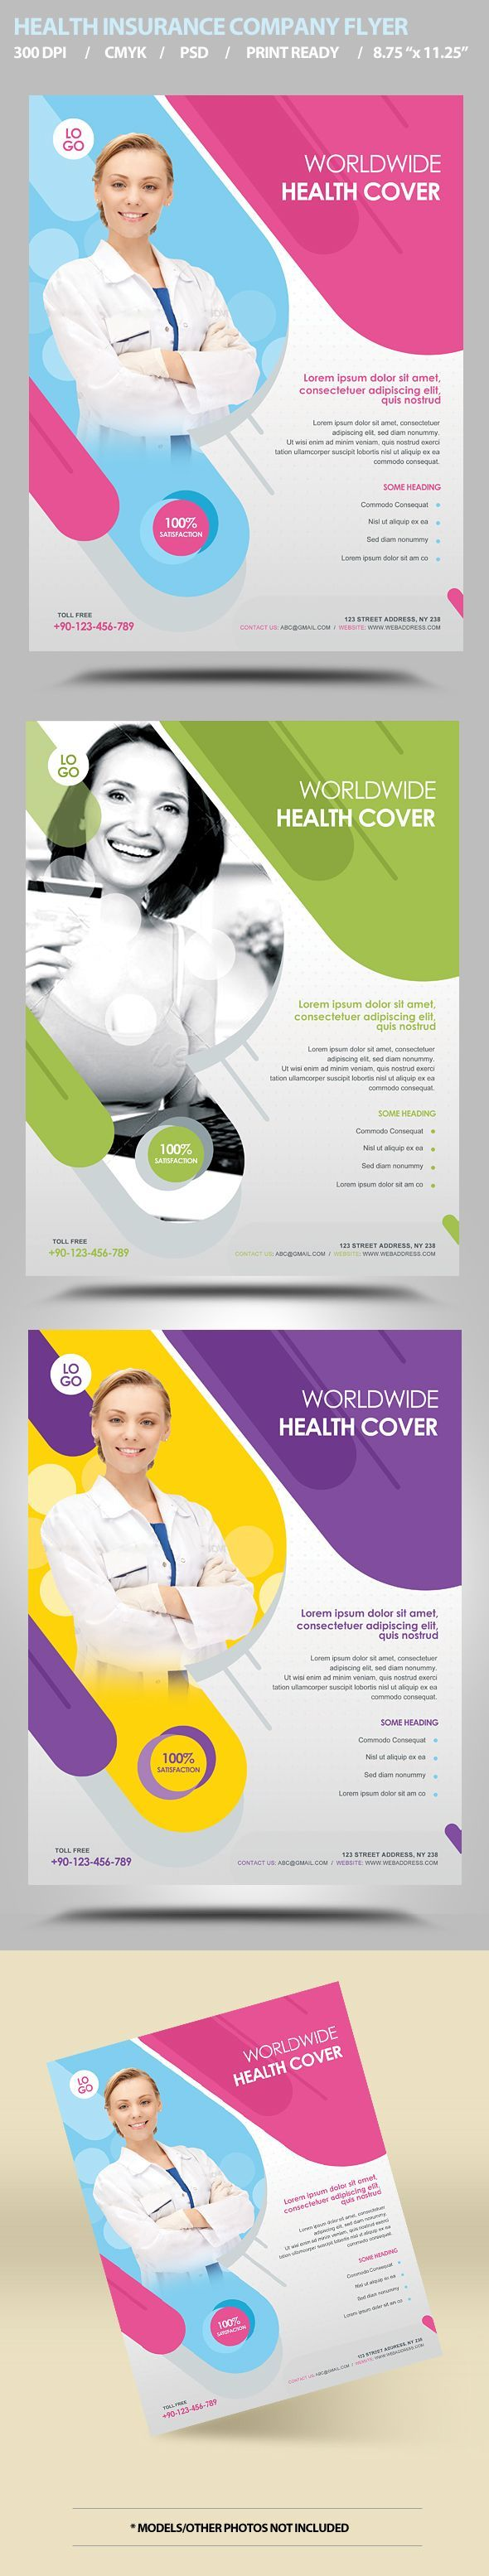 ideas about flyer template flyer design health insurance flyer template by satgur via behance